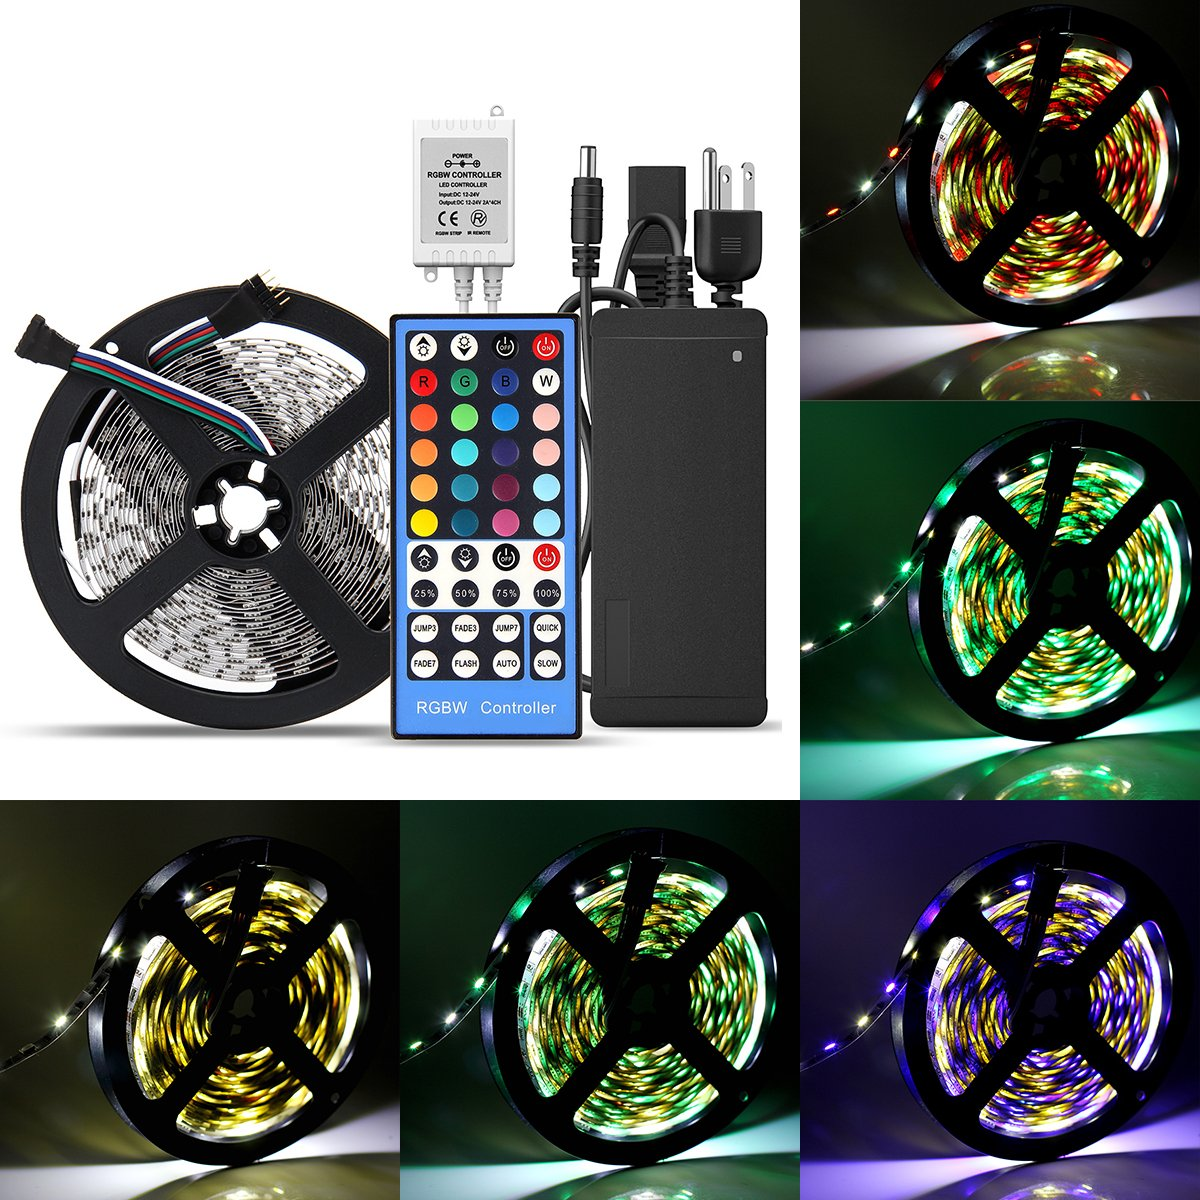 SUPERNIGHT LED Light Strip, Color Changing 16.4ft RGBW LED Strip [SMD 5050 DC 12V 300 Leds] With 40-Keys IR Controller & Power (Can Be White Color, RGB Color, RGB+White Color, All In One Strip)